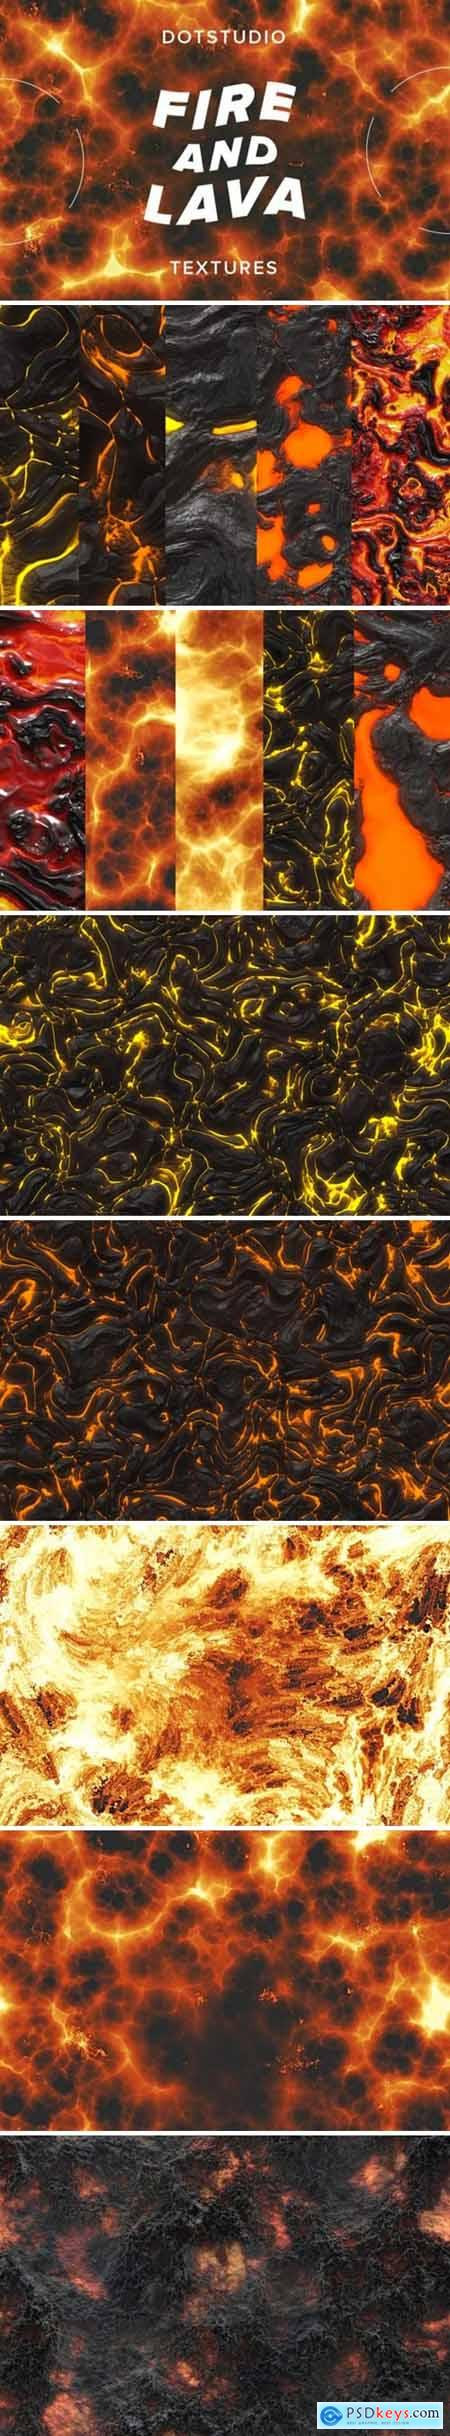 Fire and Lava Textures 3587268